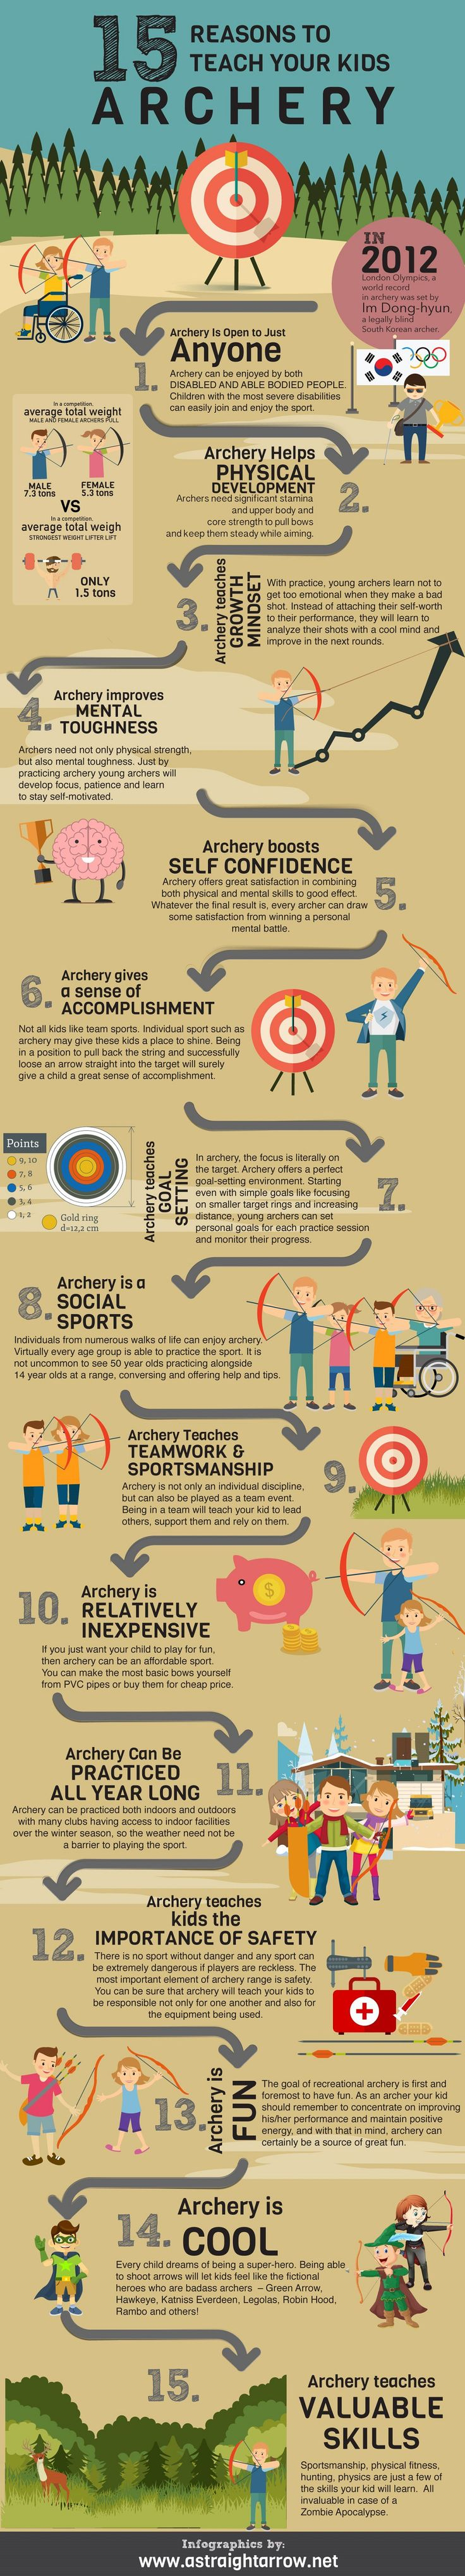 If you thinkthat your kid could use a bit of enlightenment, develop self-confidence and discipline, and get some exercise, then kid's archery classes may be perfect for you. For one to excel in archery he…